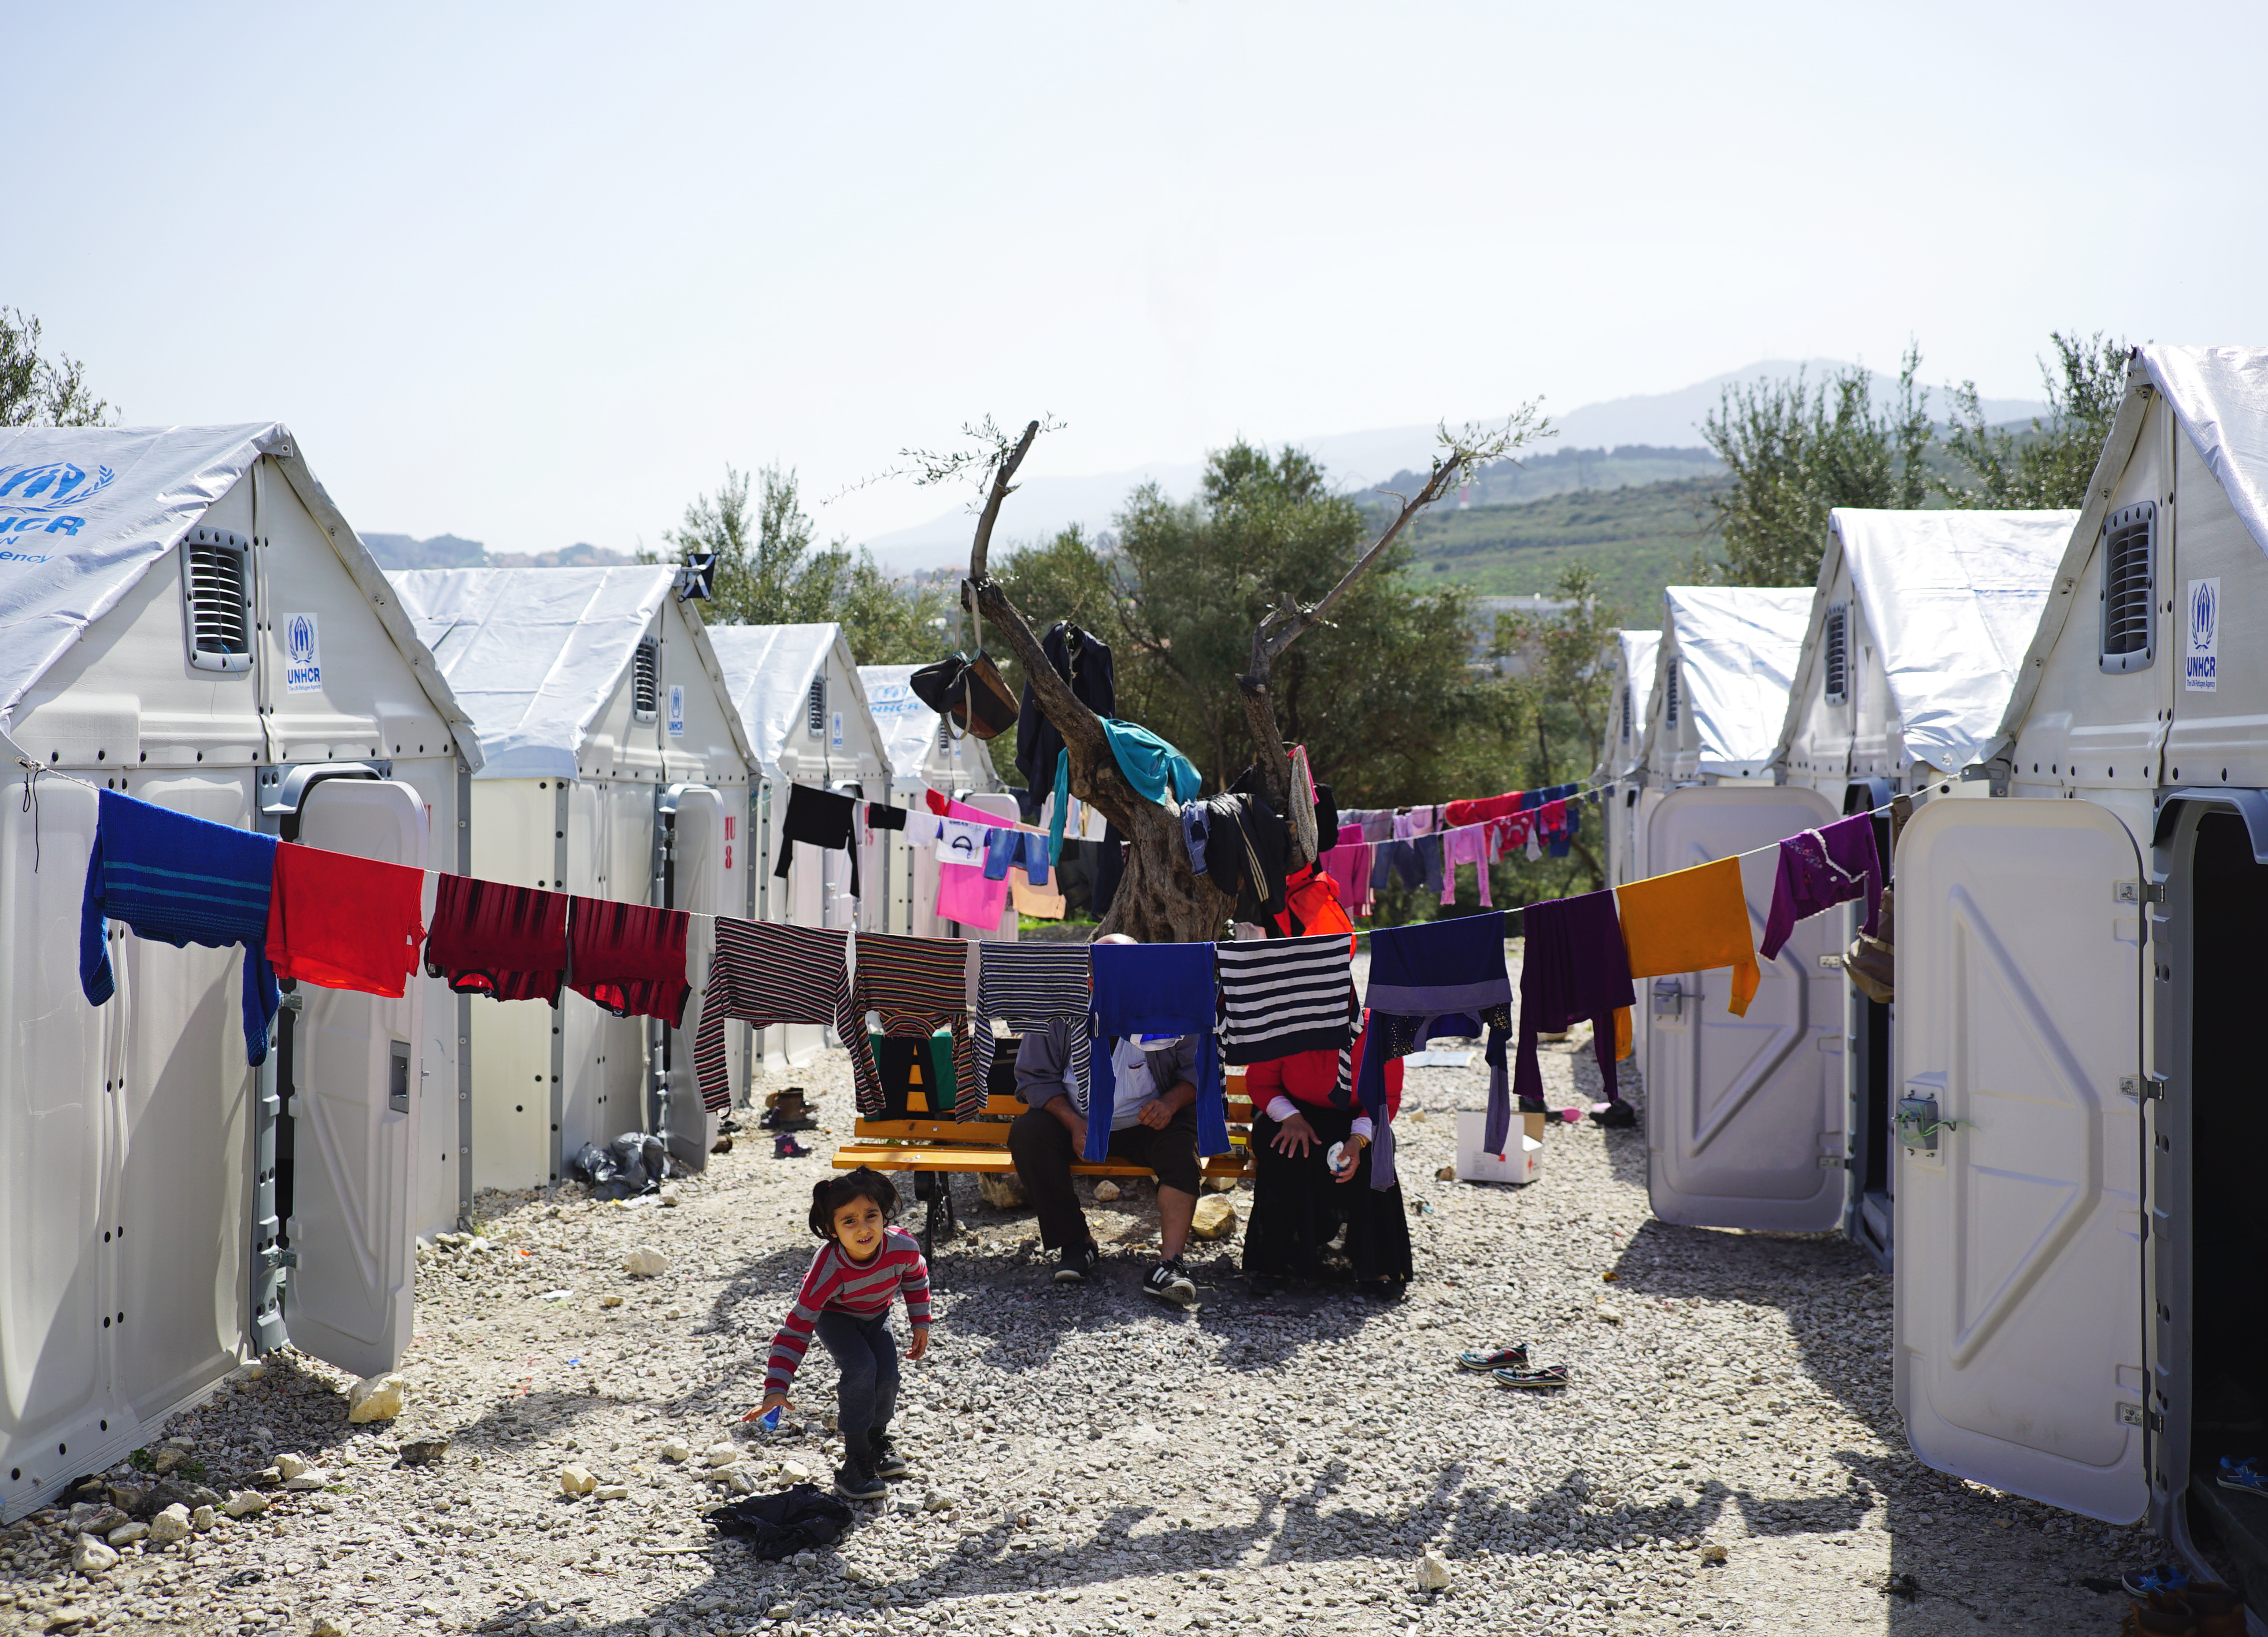 More than 150 Better Shelter units have been installed by UNHCR and implementing partners in the Kara Tepe site in Lesvos where they function as temporary accommodation, offices and medical aid clinics.